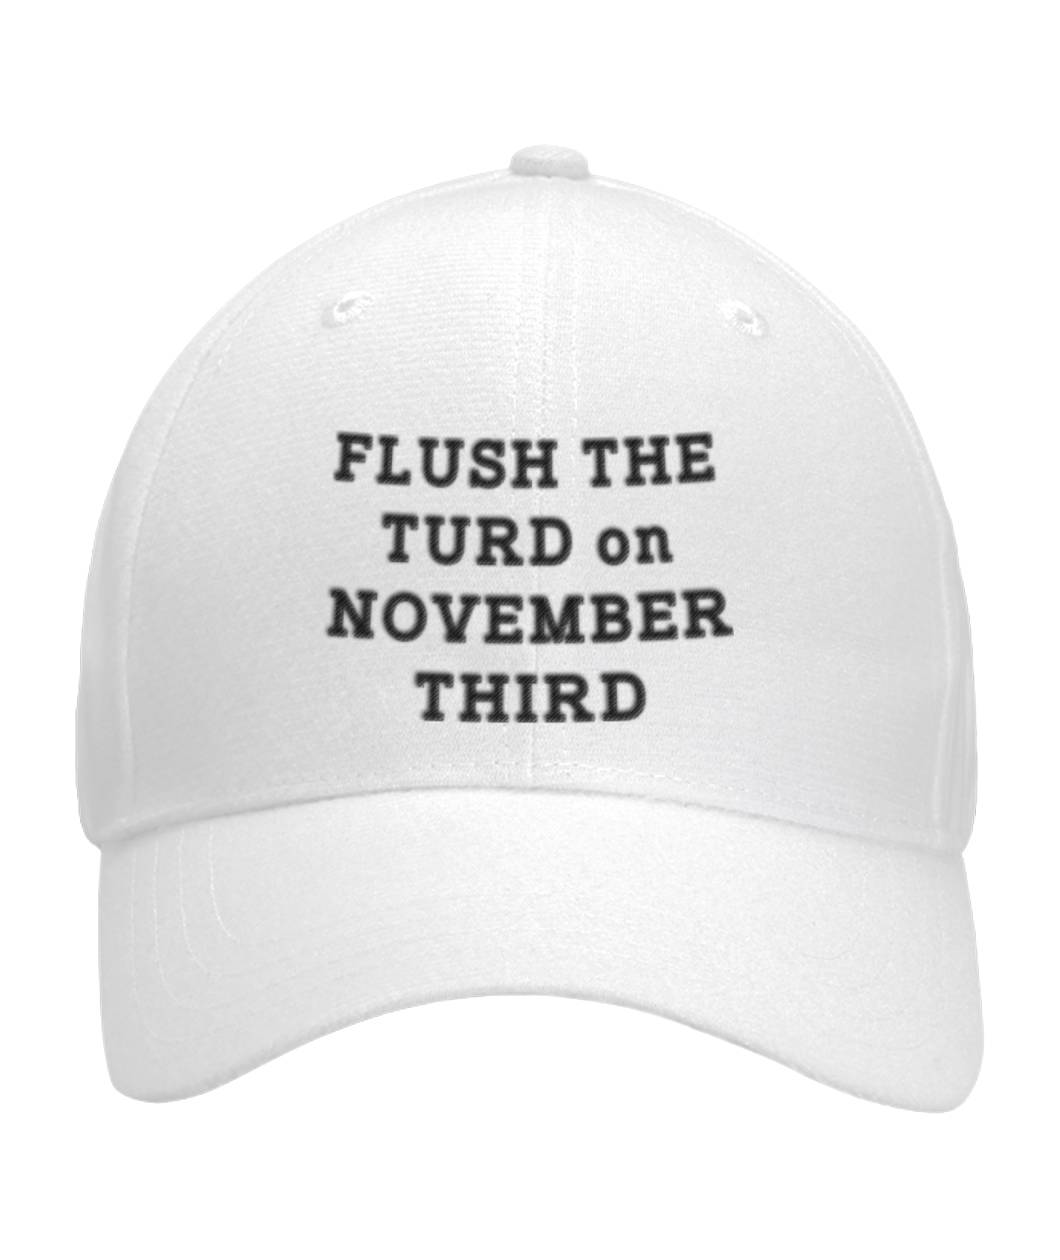 Flush The Turd on November Third White Hat